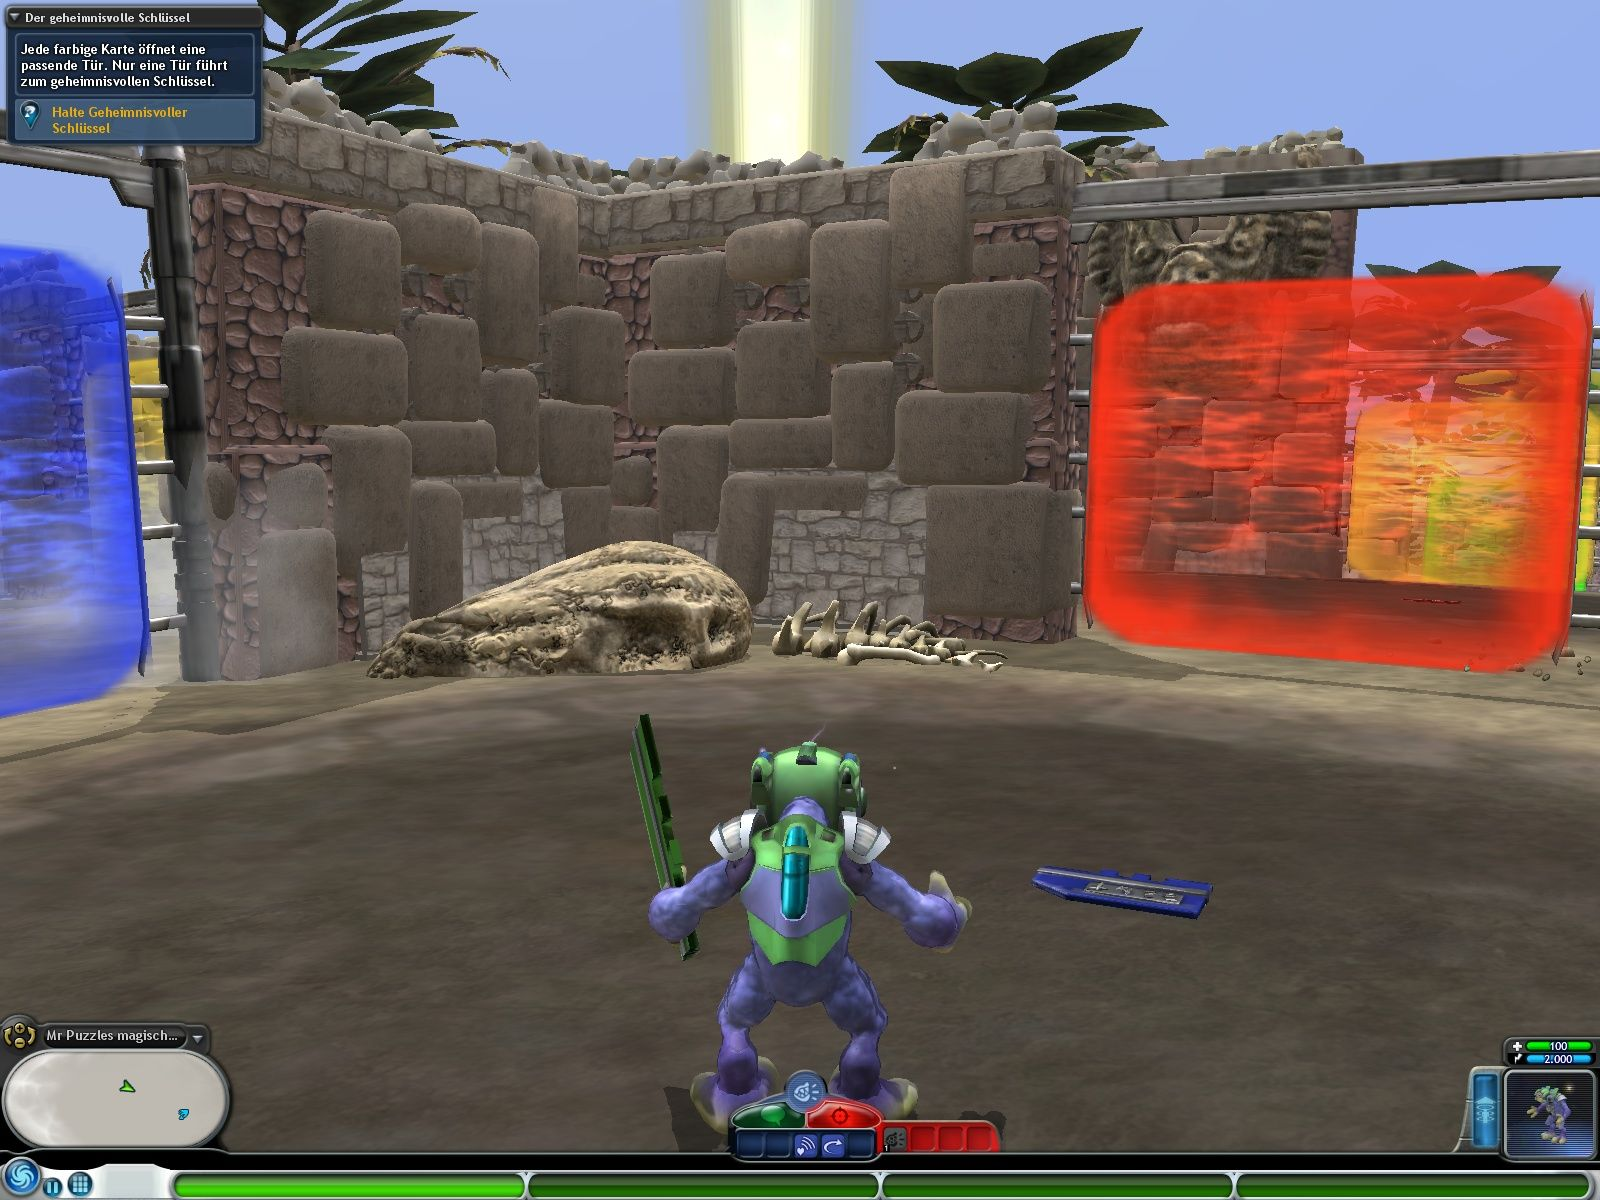 Spore: Galactic Adventures Windows A riddle - find your way through a mace of doors.